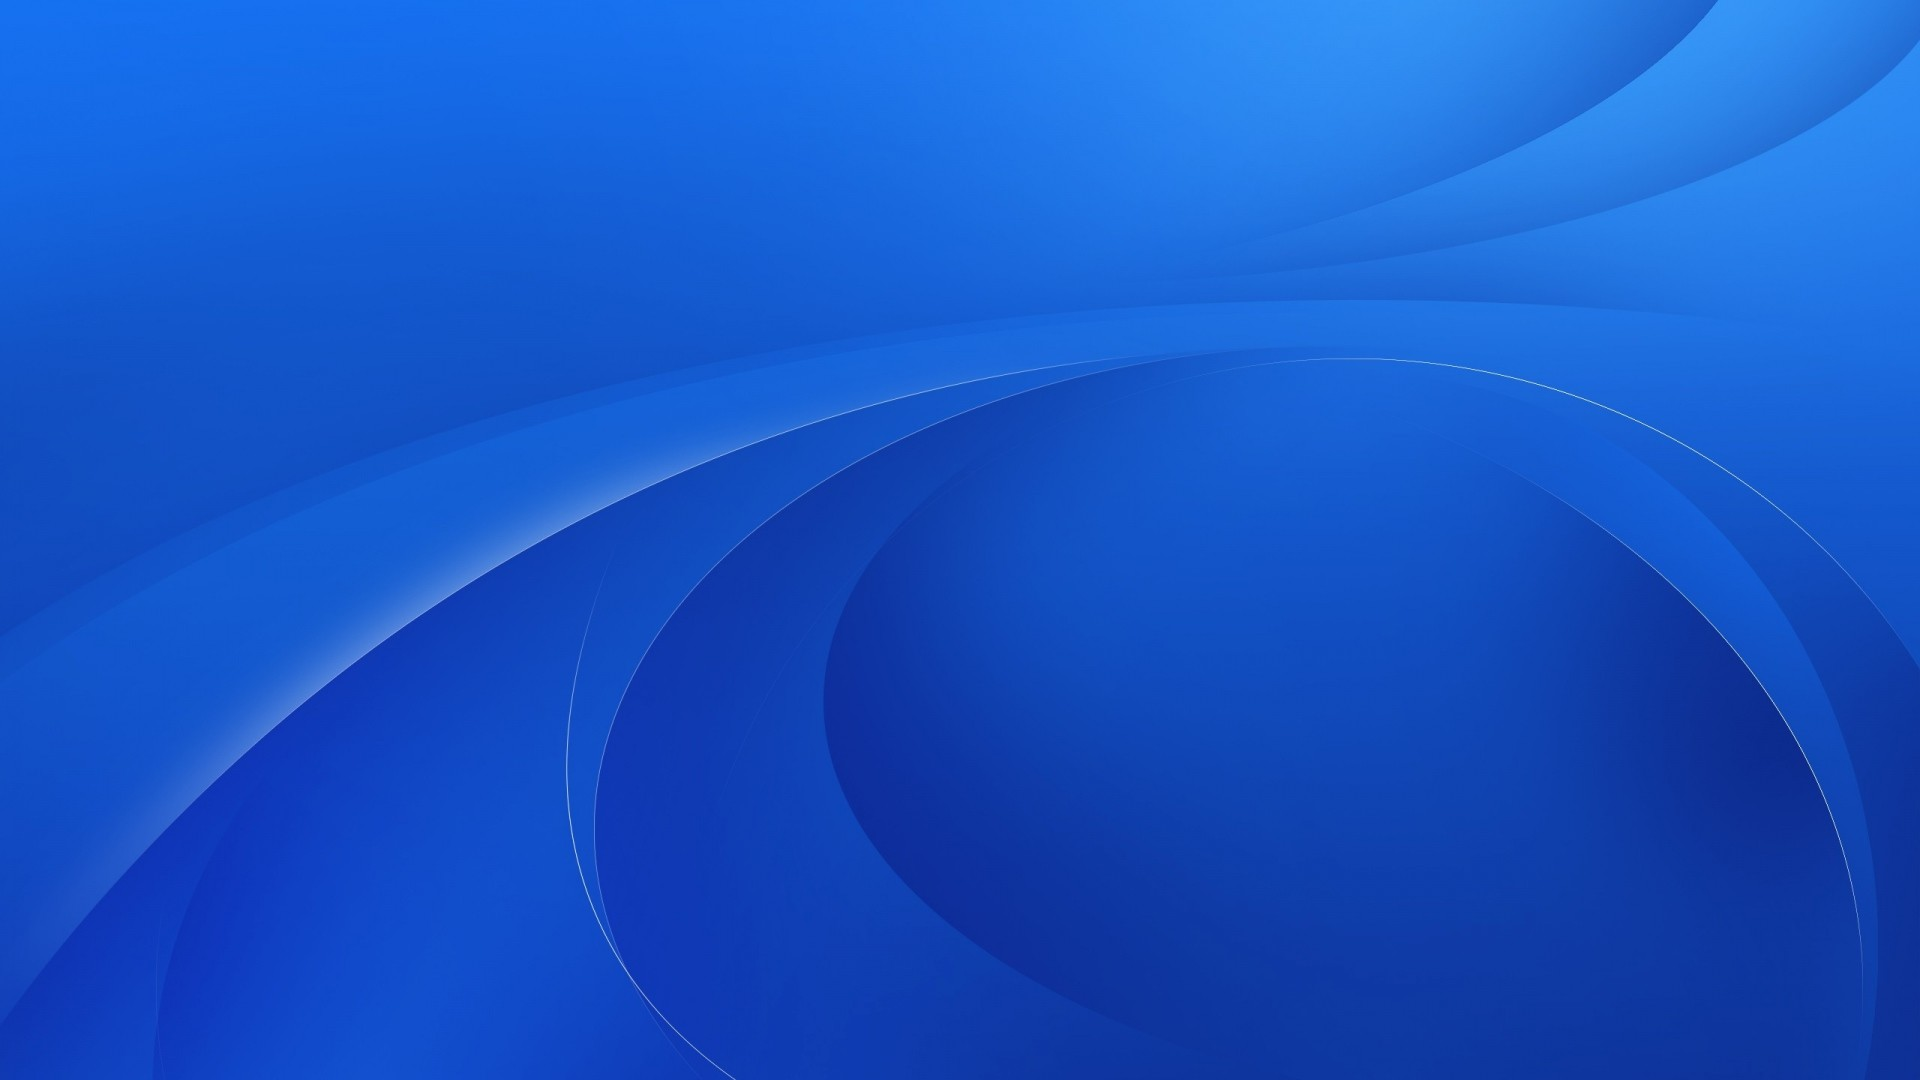 1920x1080 Download Wallpaper  Blue, Line, Oval, Background .